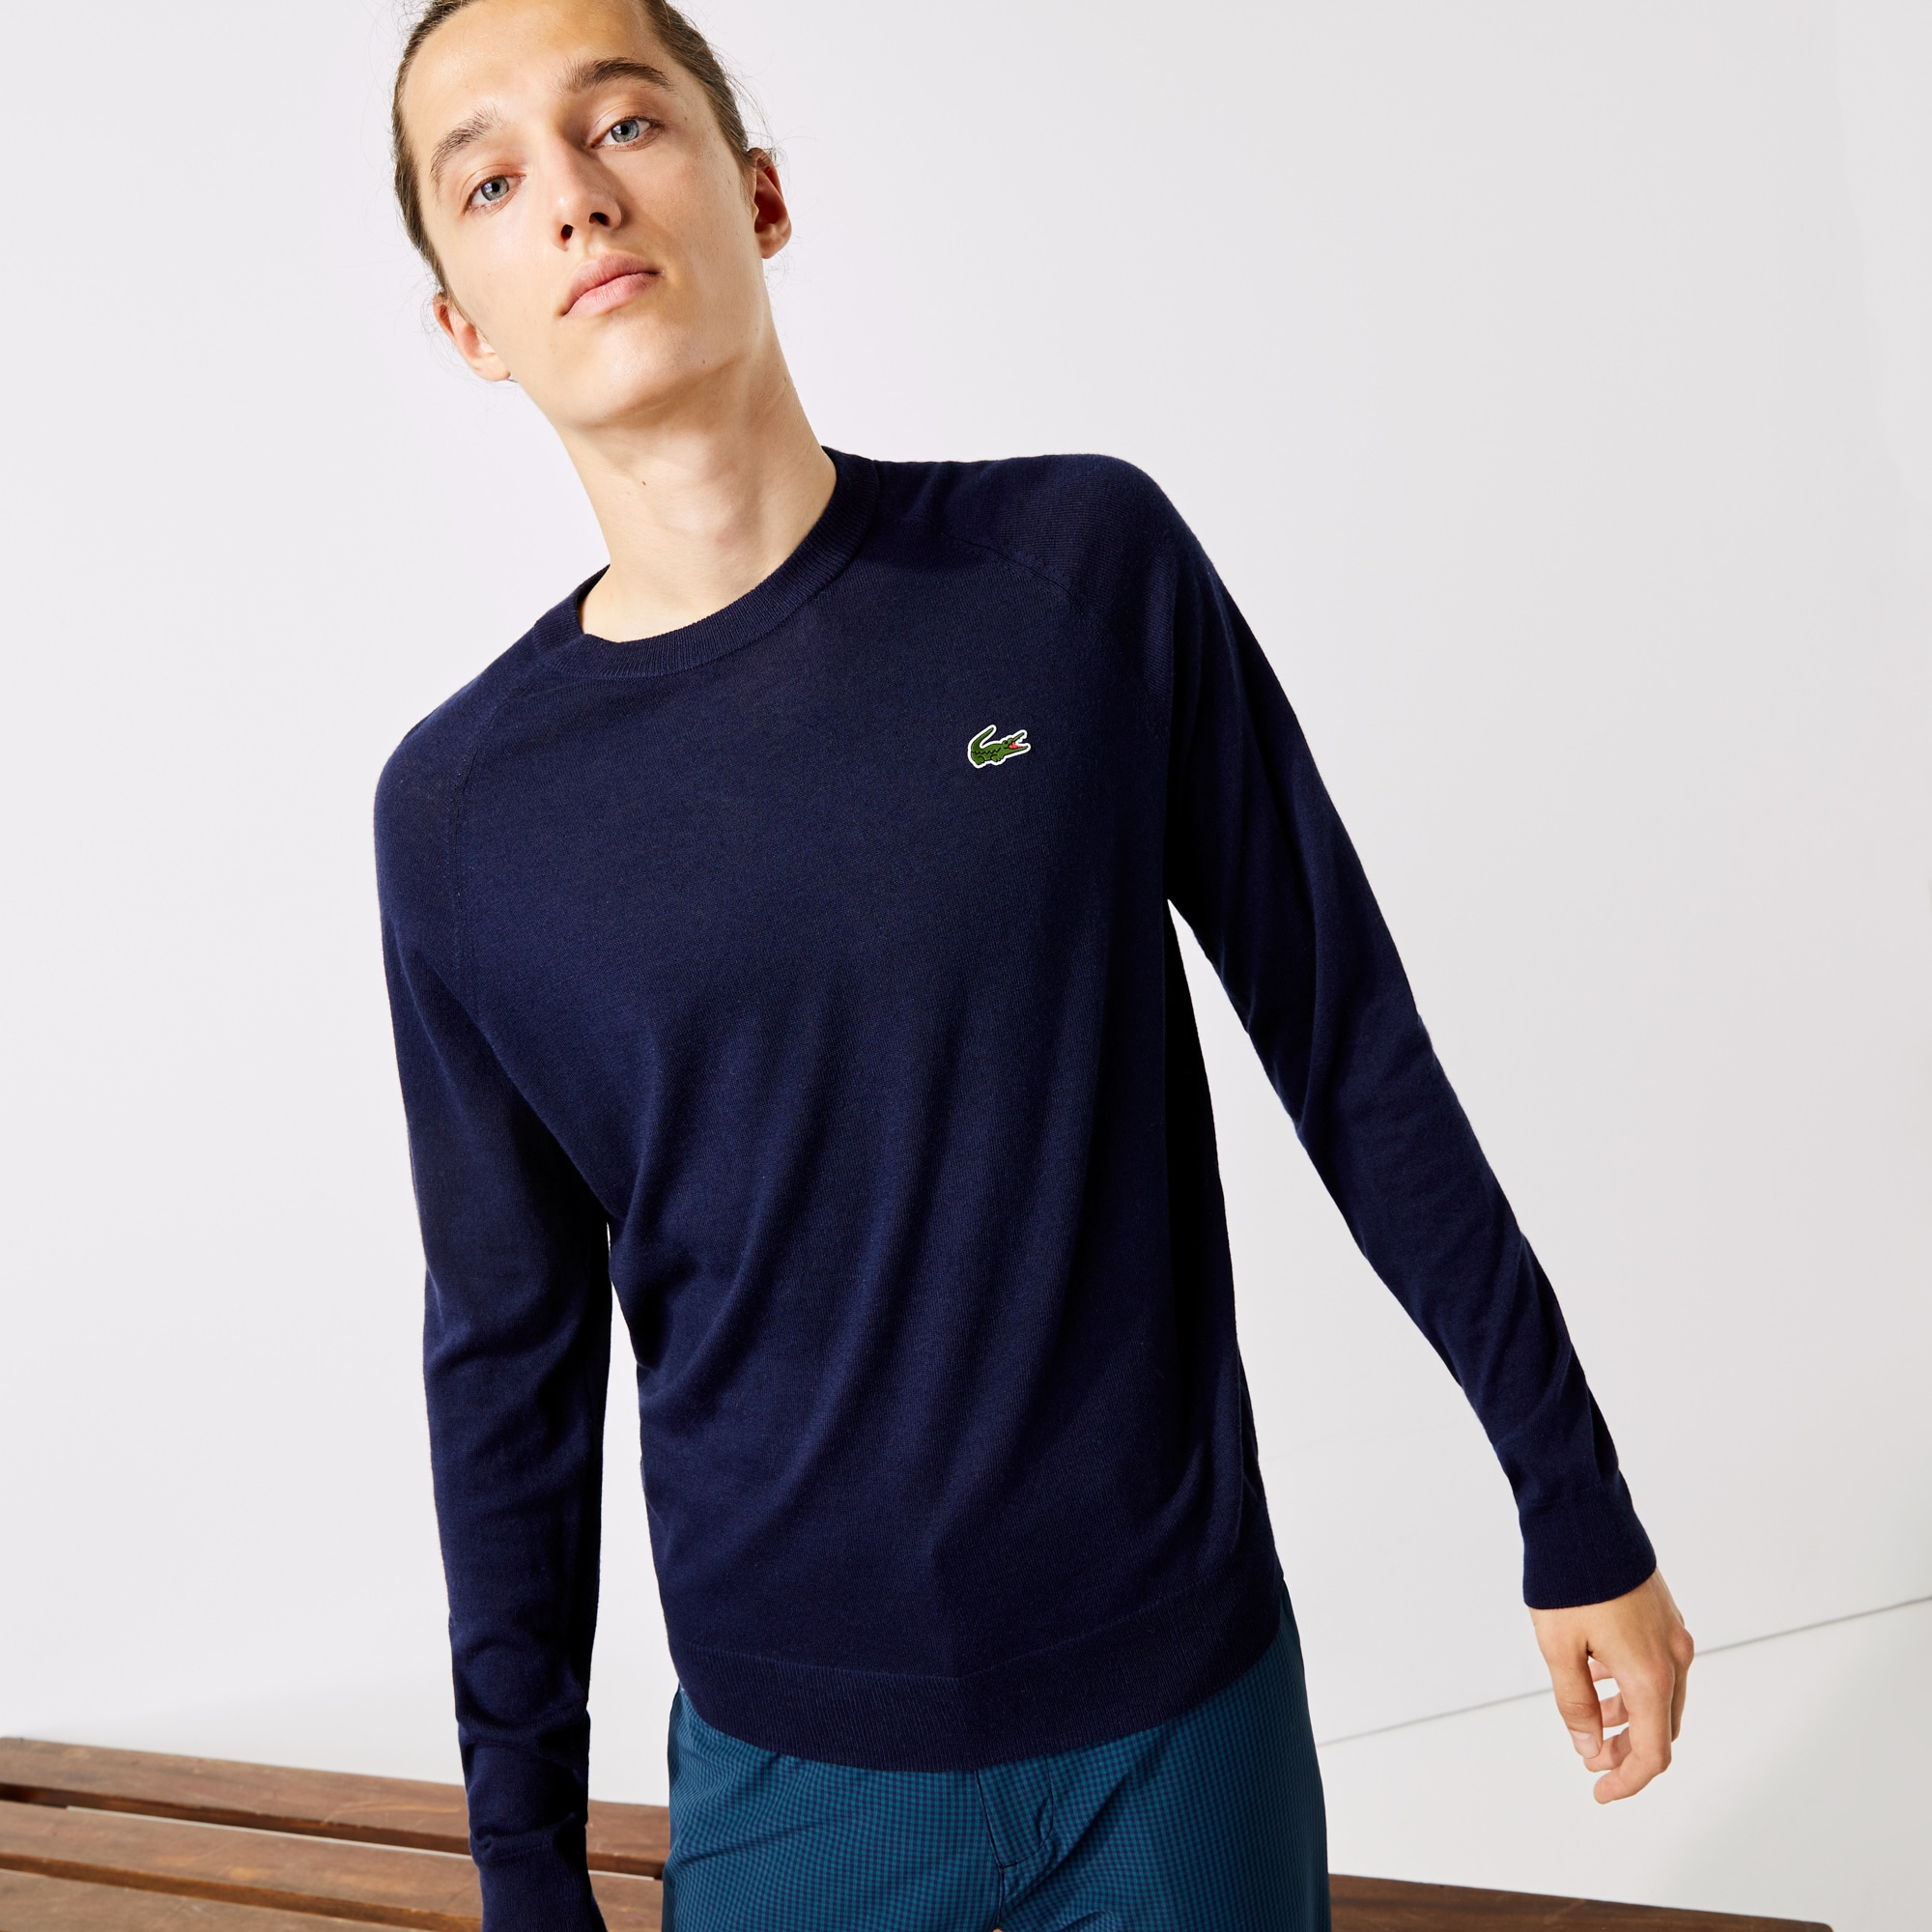 Men's Lacoste SPORT Solid Breathable Knit Crew Neck Golf Sweater